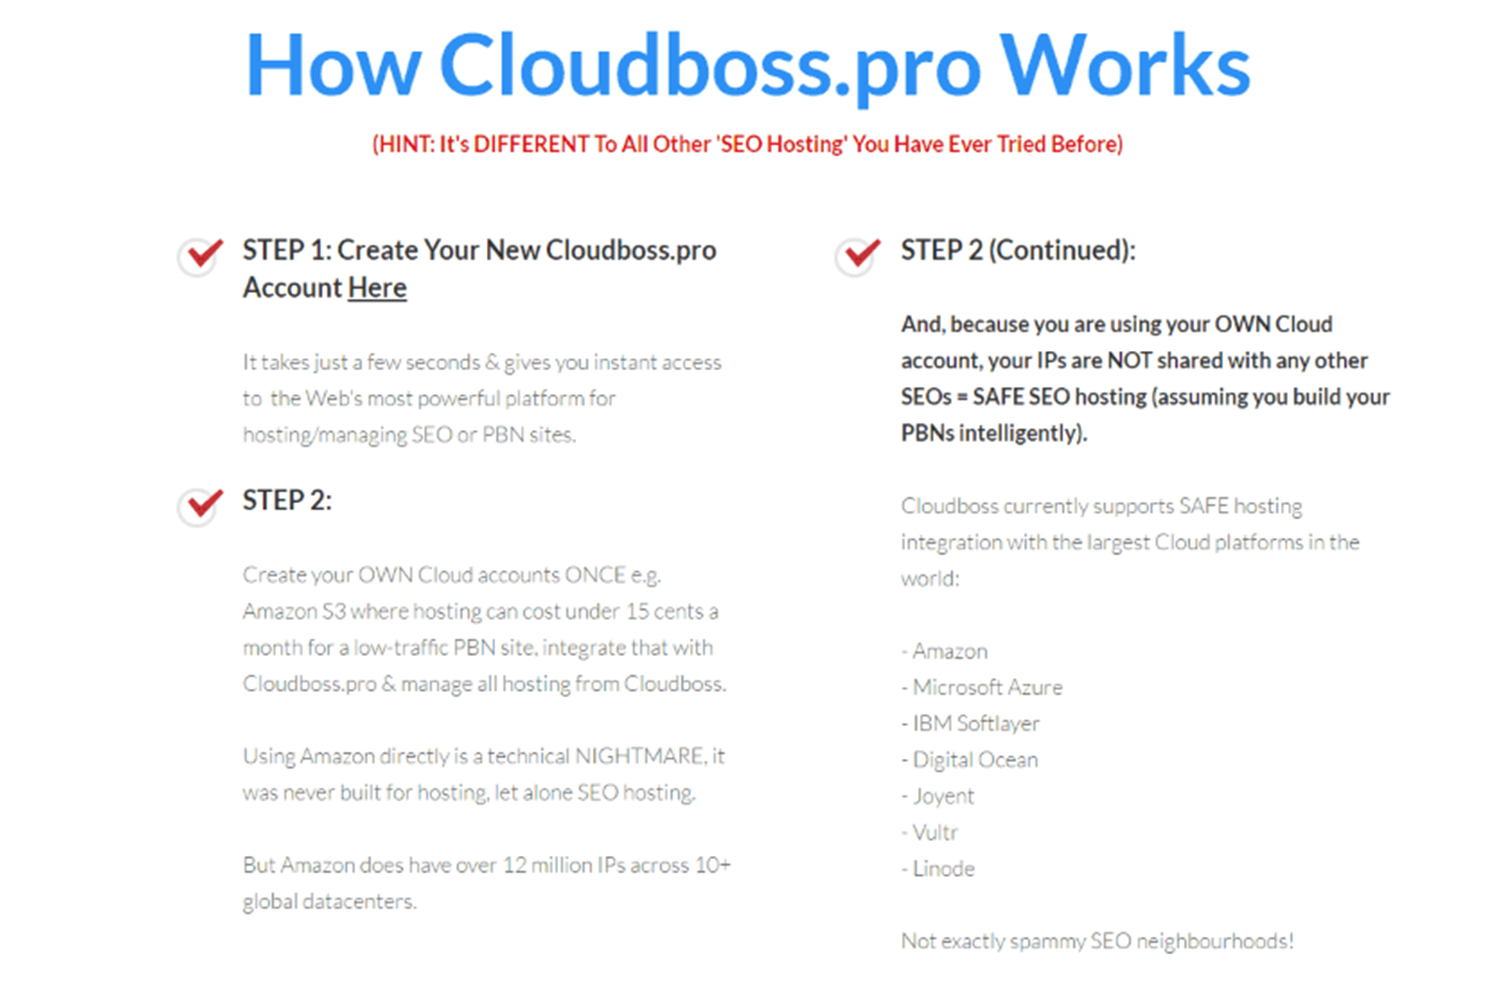 How Cloudboss Pro Works for you